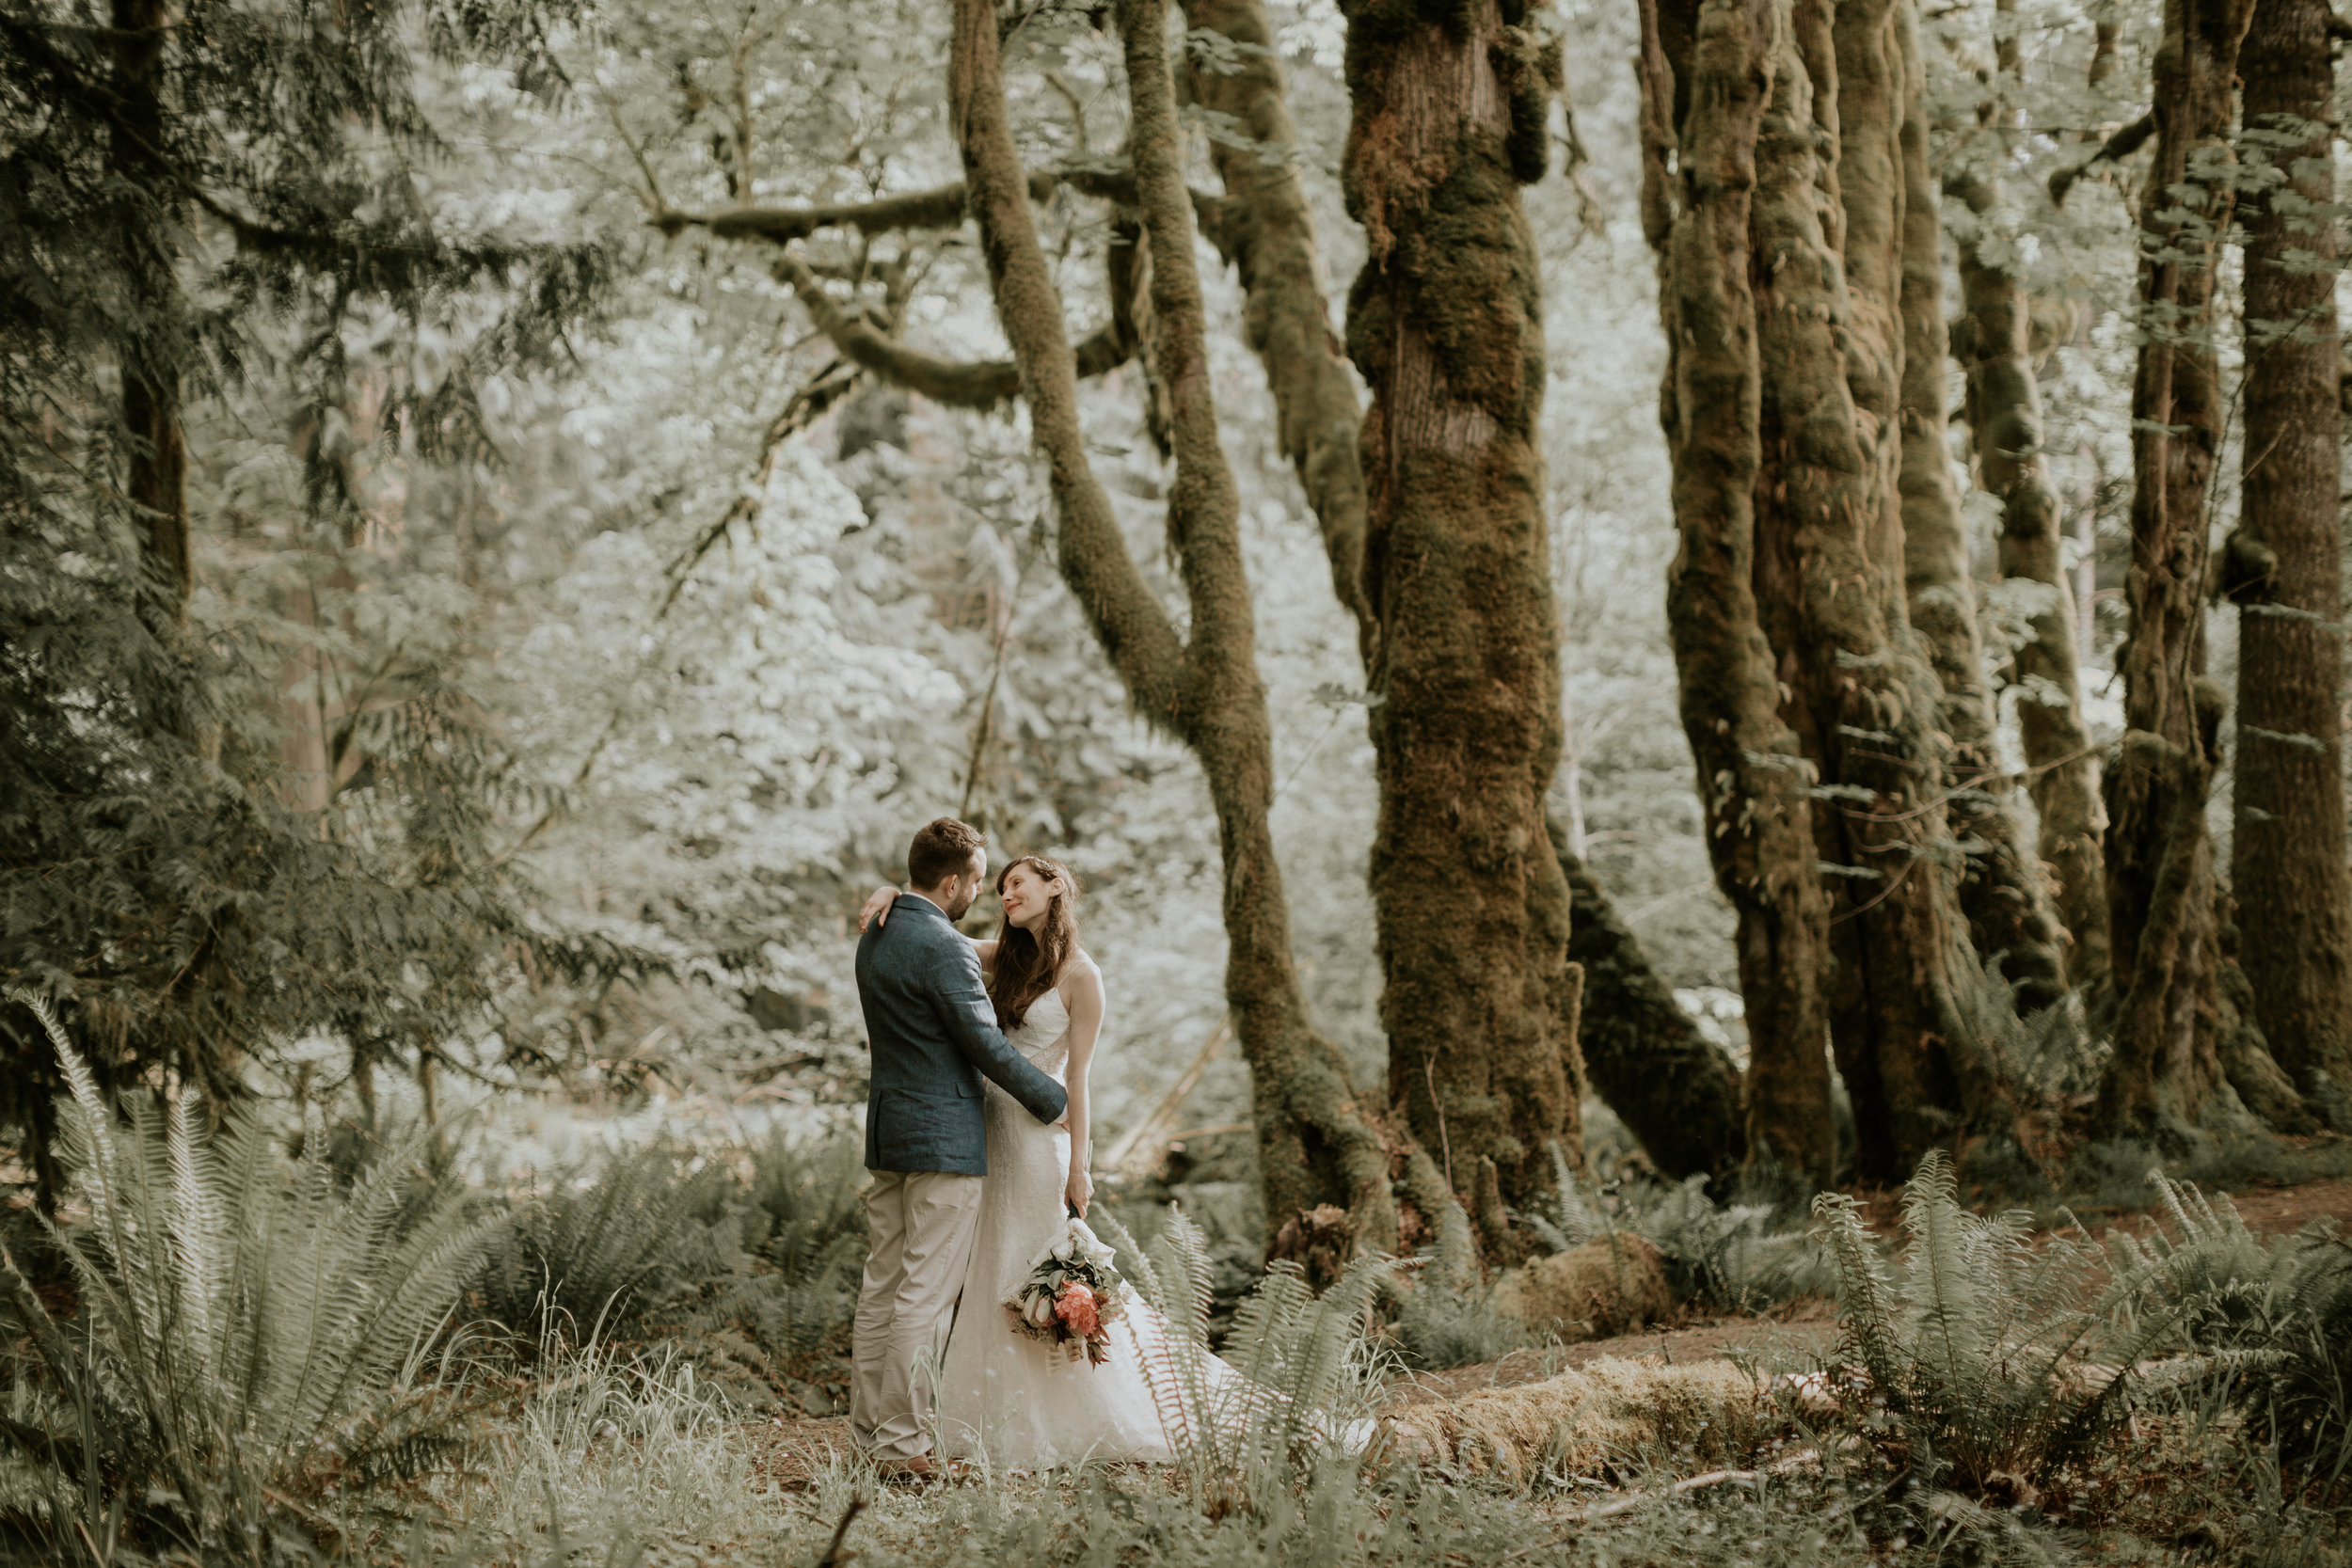 PNW-elopement-wedding-engagement-olympic national park-port angeles-hurricane ridge-lake crescent-kayla dawn photography- photographer-photography-kayladawnphoto-278.jpg